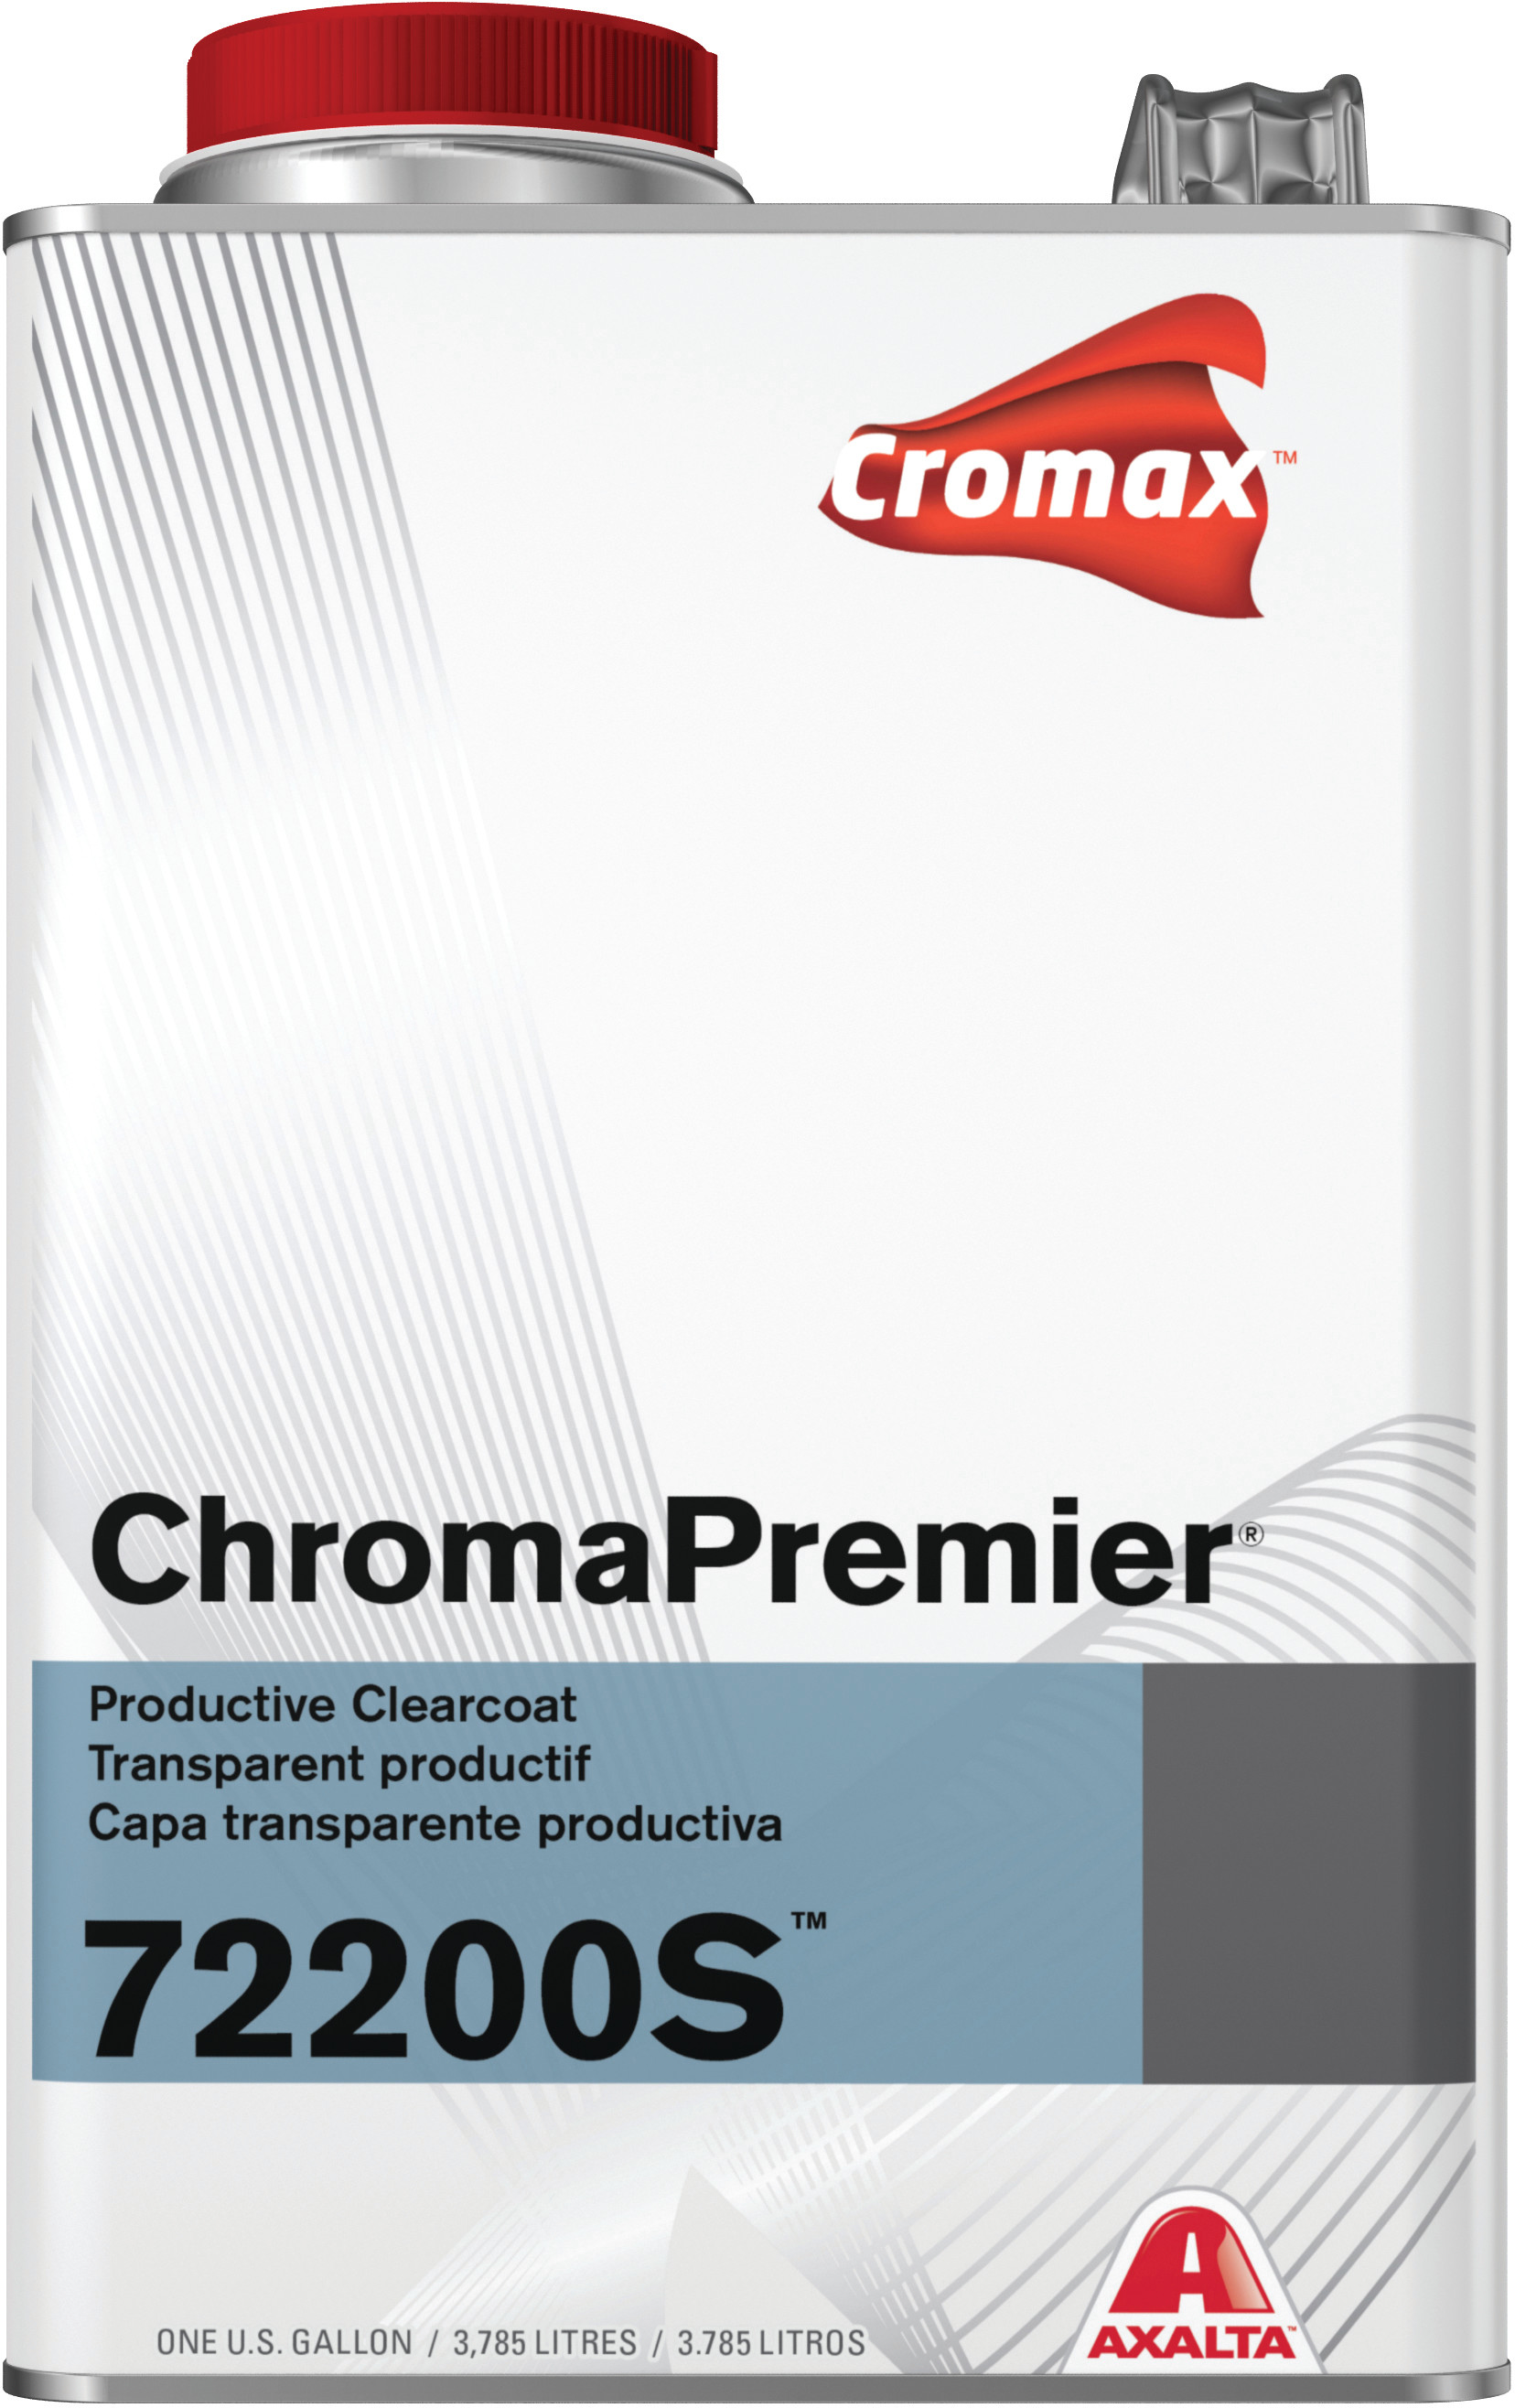 Cromax Chromapremier 72200s Clearcoat Gallon